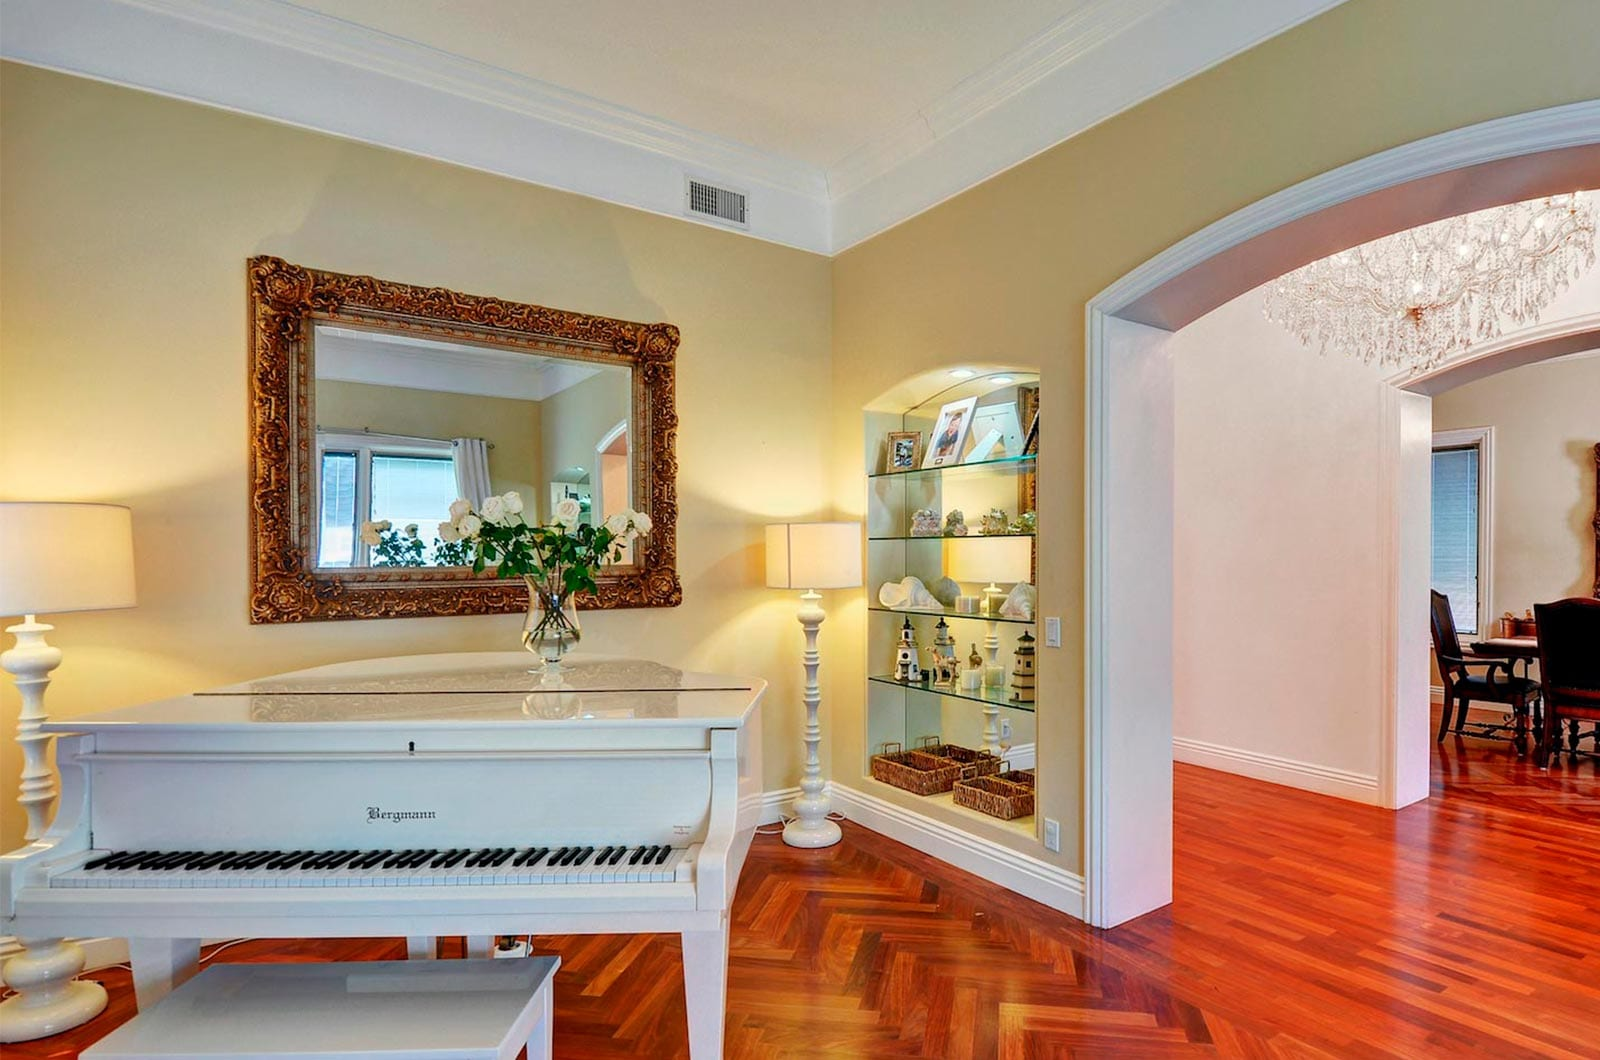 feat-image-professional-real-estate-photography